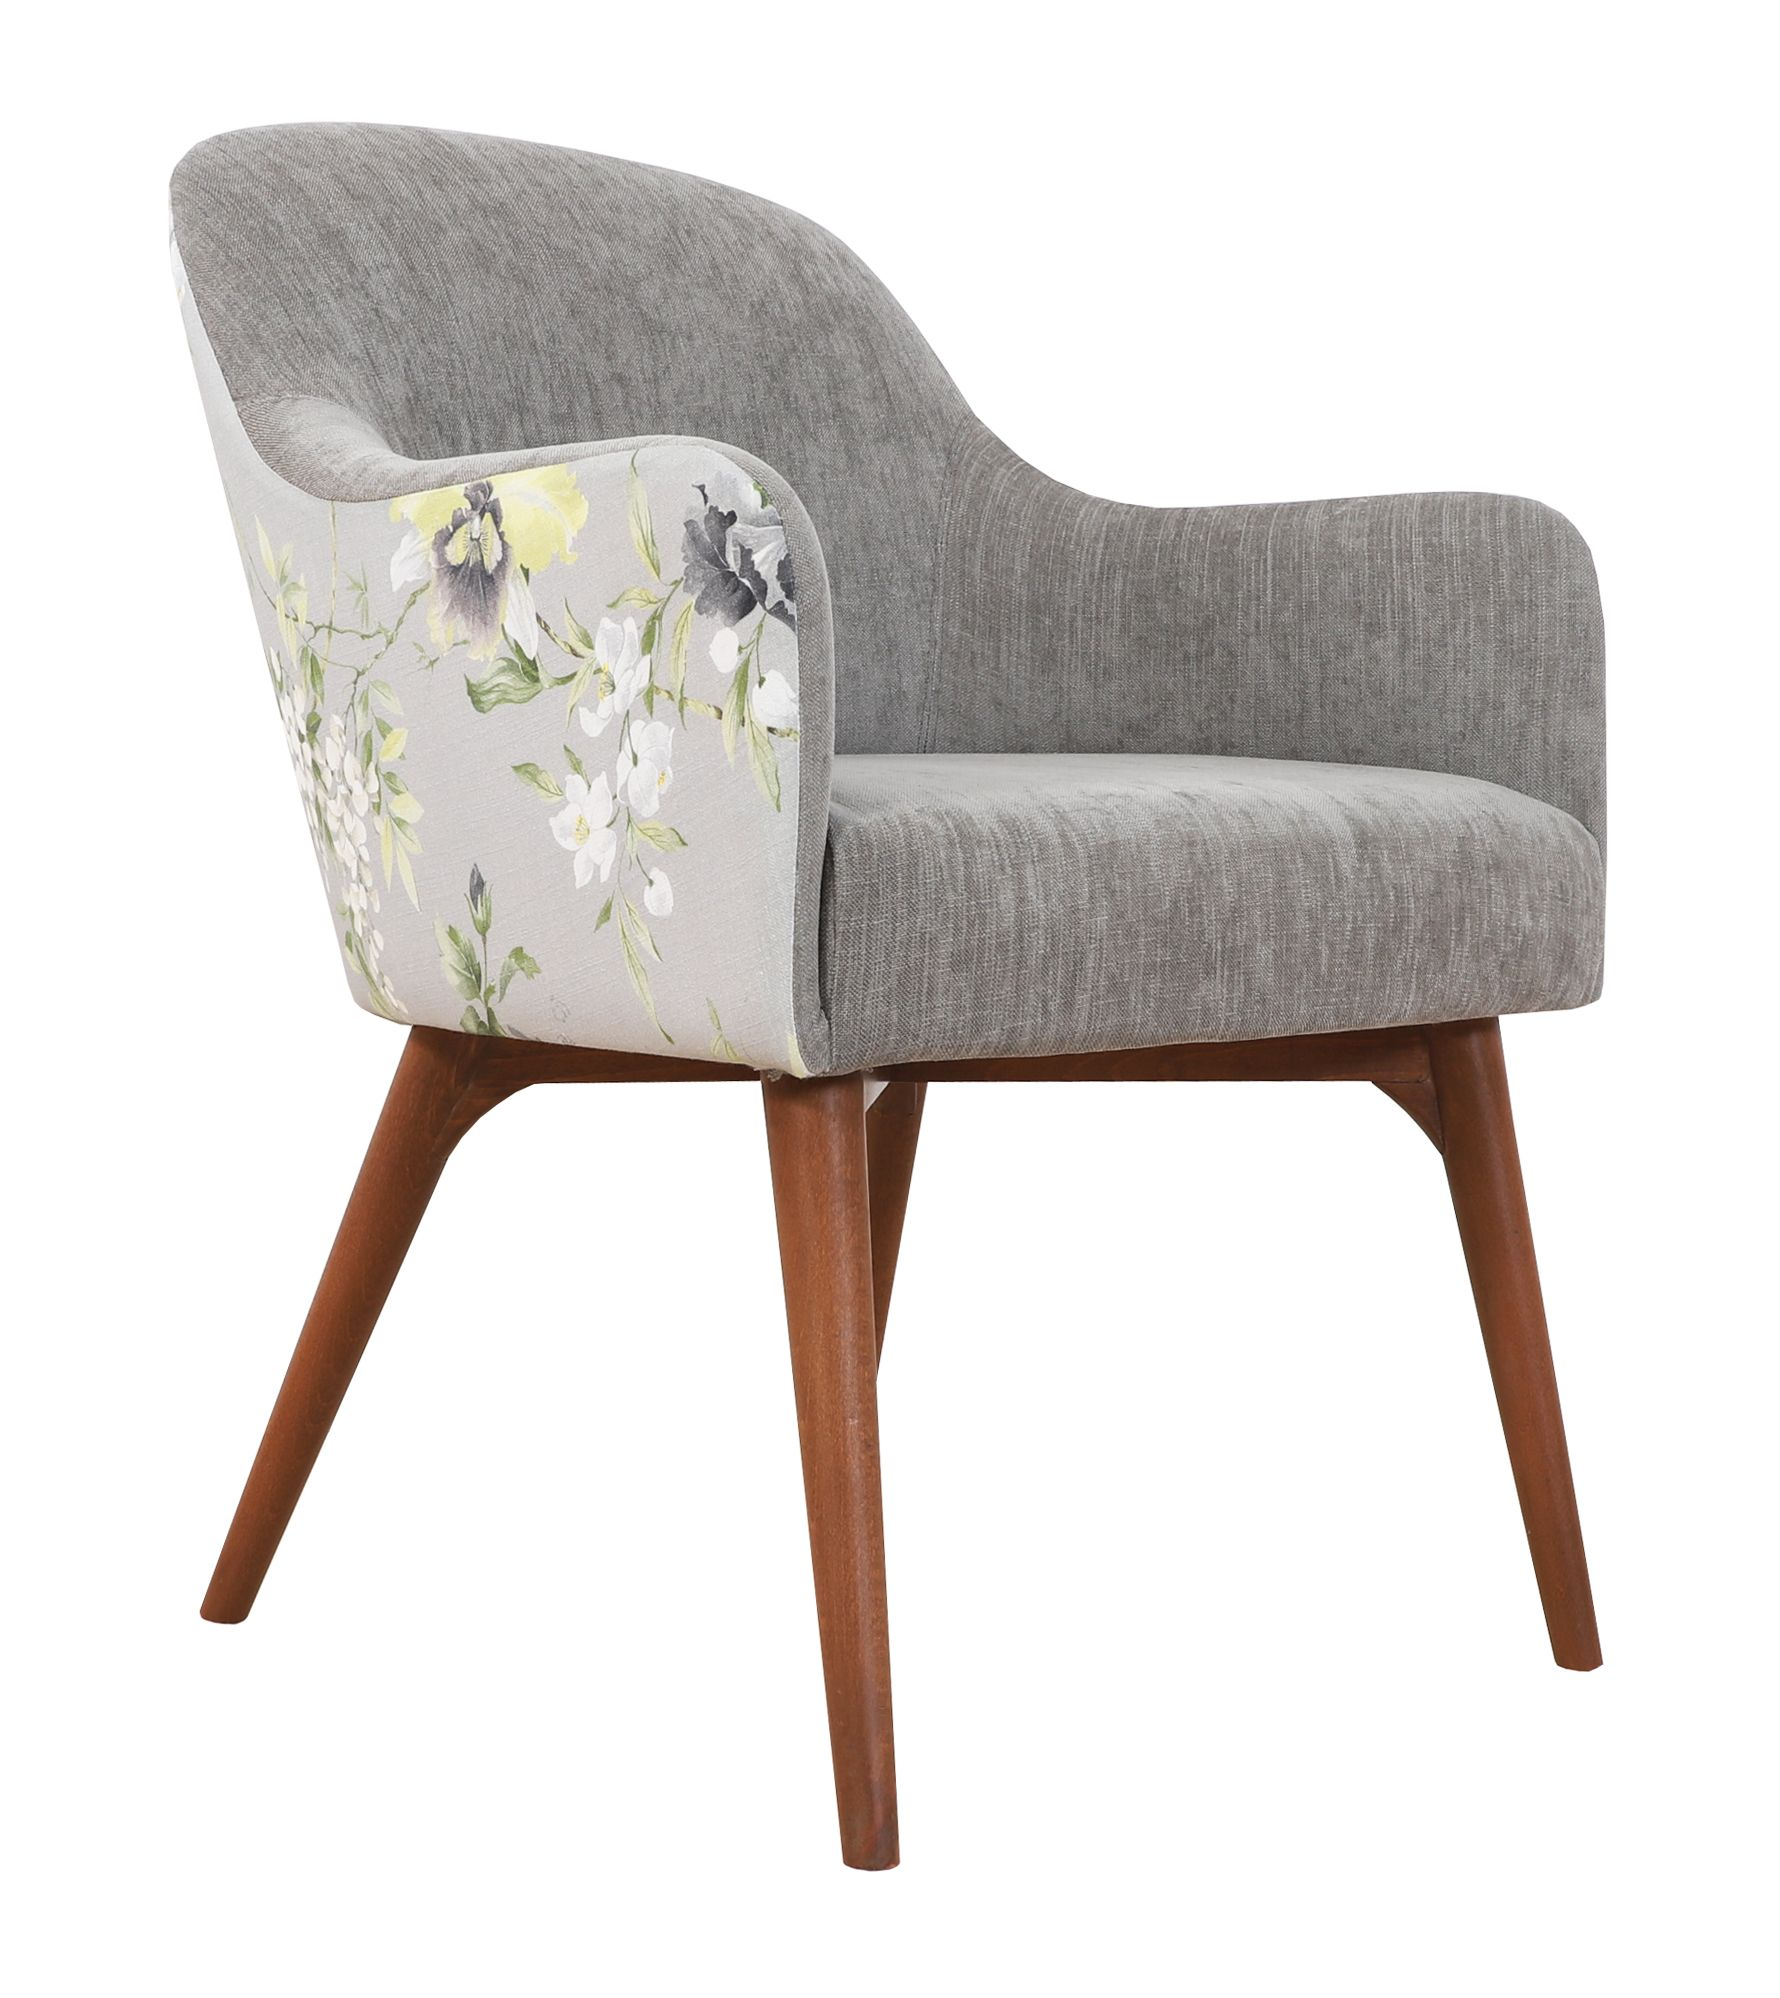 Aavaha A Comfortable Dining Chair is part of Comfortable dining chairs - An inviting design … Comfortable chair for the dining area and restaurants Wooden legs Colorful upholstery fabric Chairs available in different colors and fabric Terminology Aavaha means Inviting (Sanskrit)